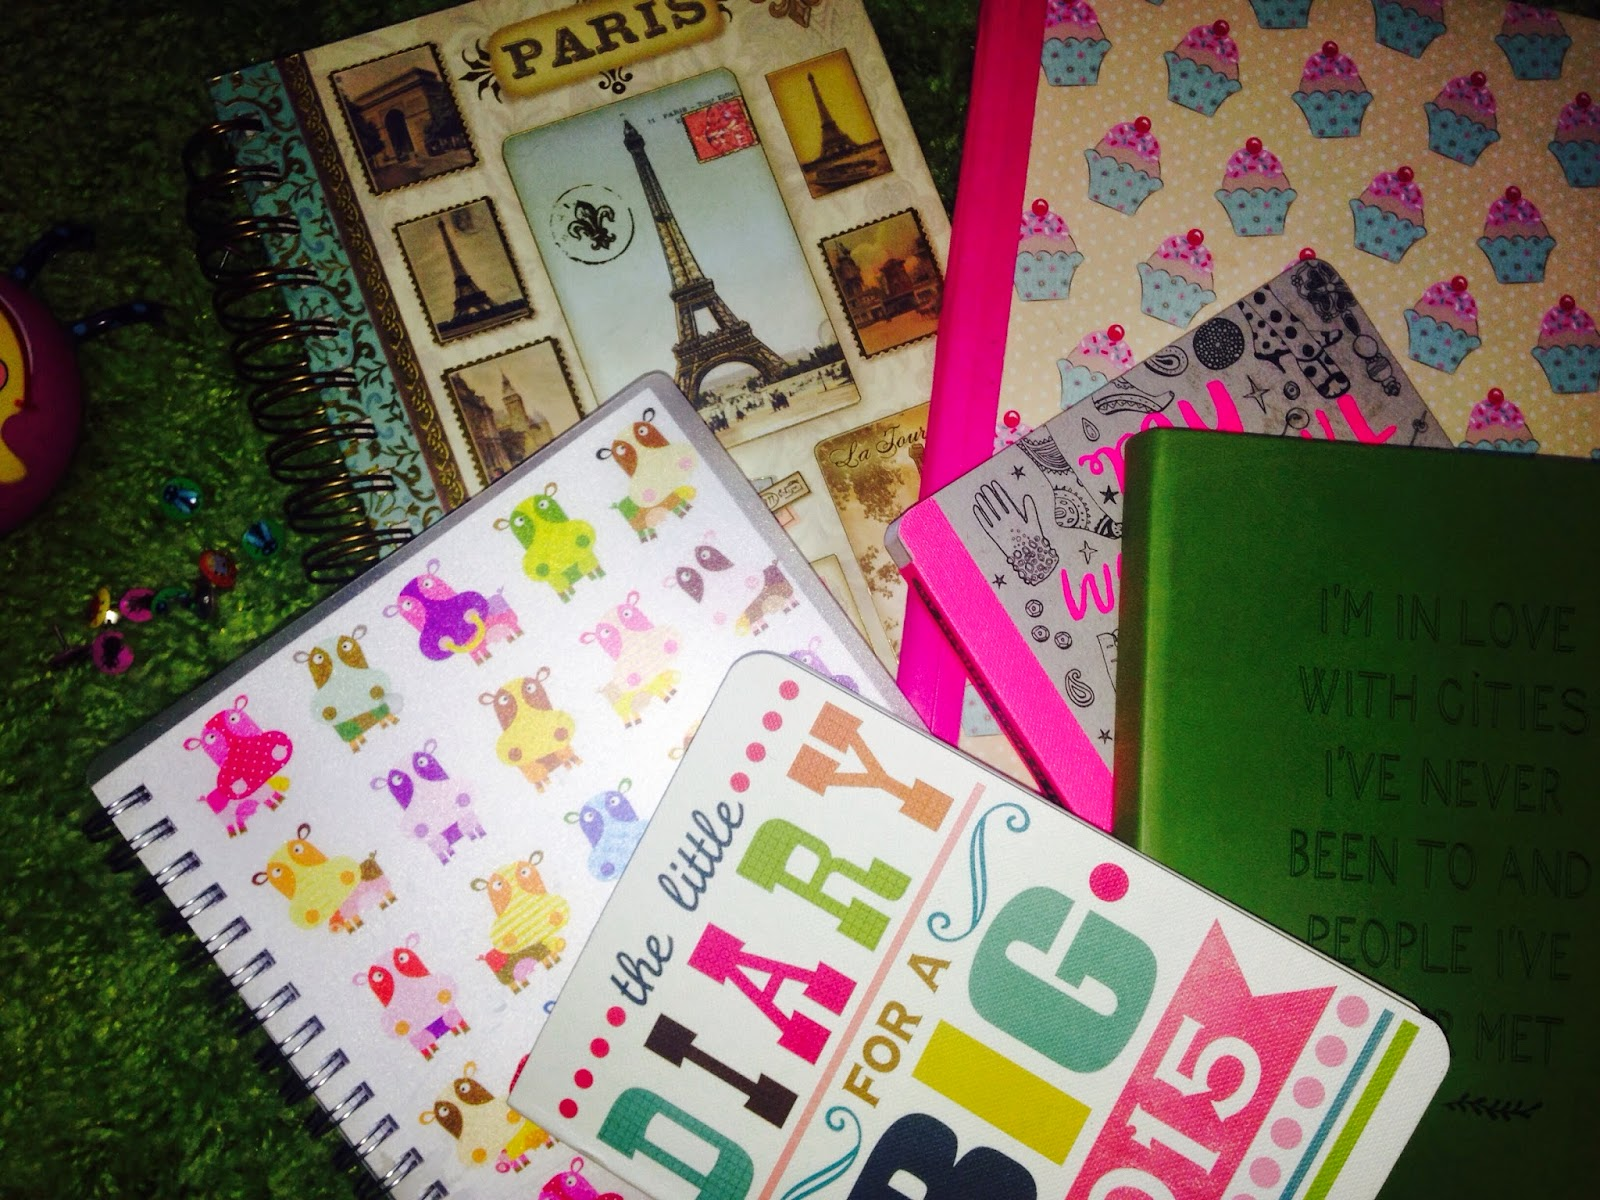 Inspire Magazine Online - UK Fashion, Beauty & Lifestyle blog | A burst of colour from a self inflicted stationary addict; Notebook; stationary; Inspire Magazine; Inspire Magazine Online